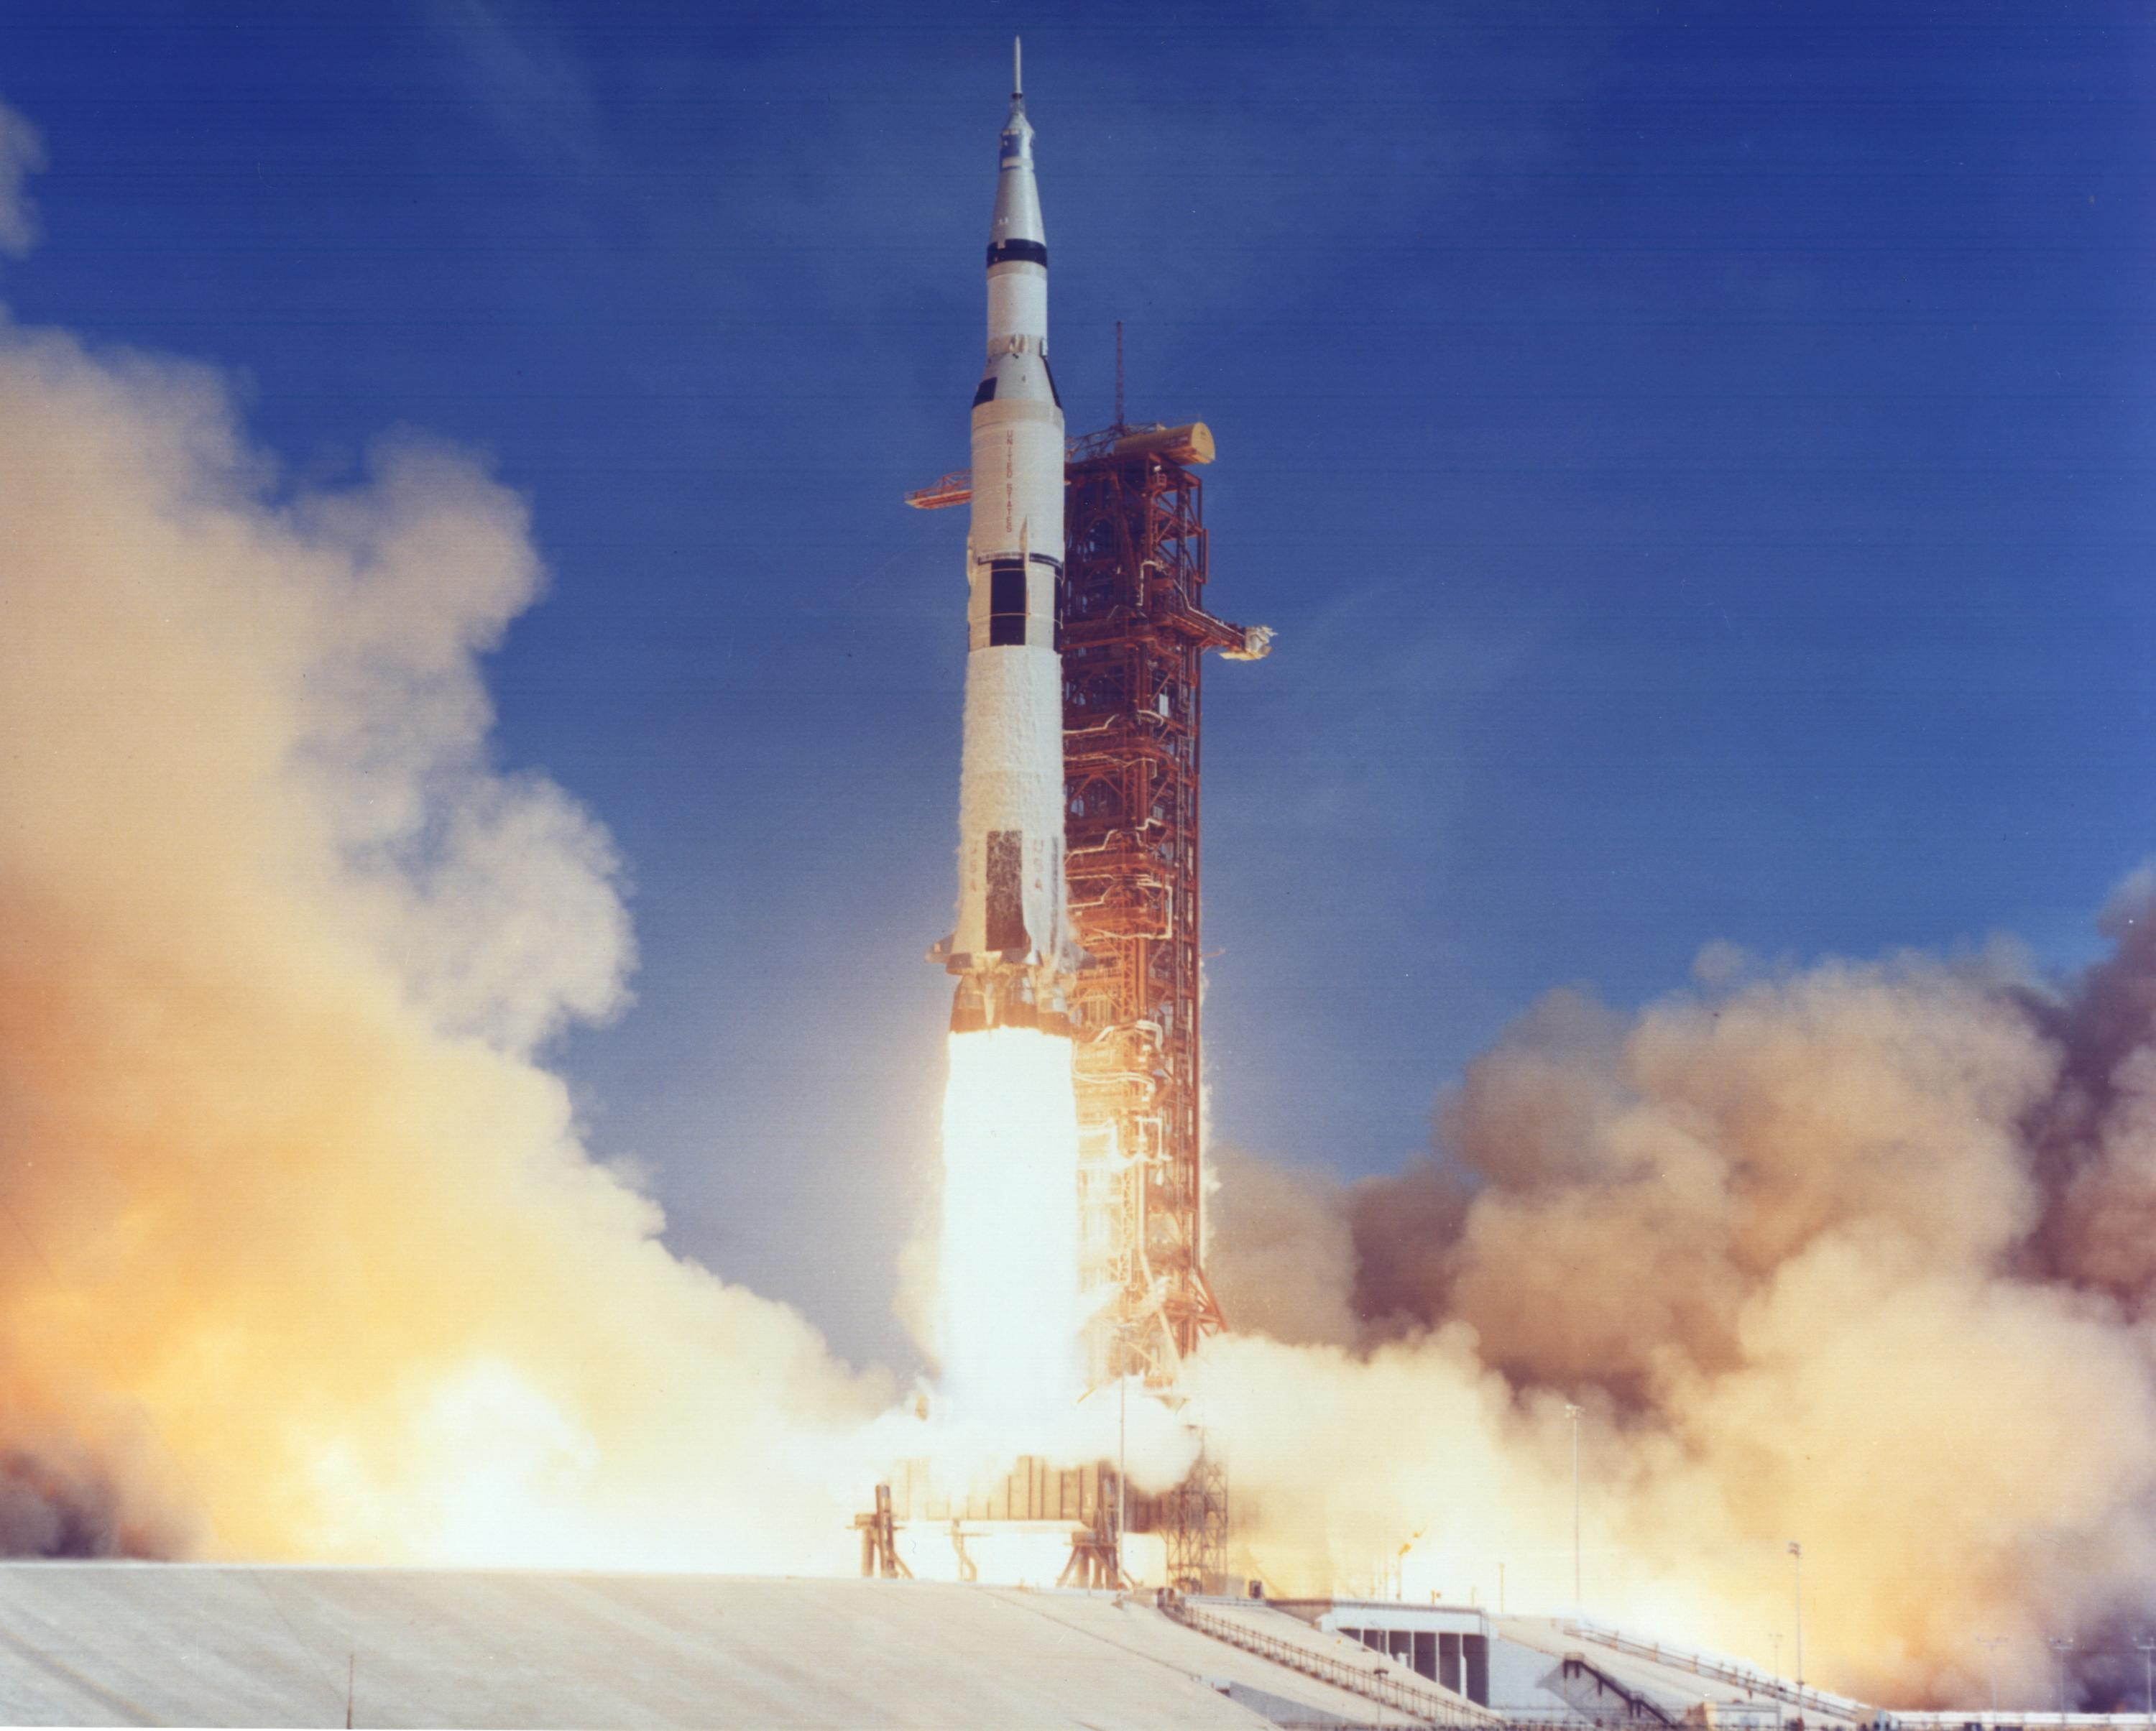 Hazardous Apollo 11 Journey Comes Alive Again in New Book